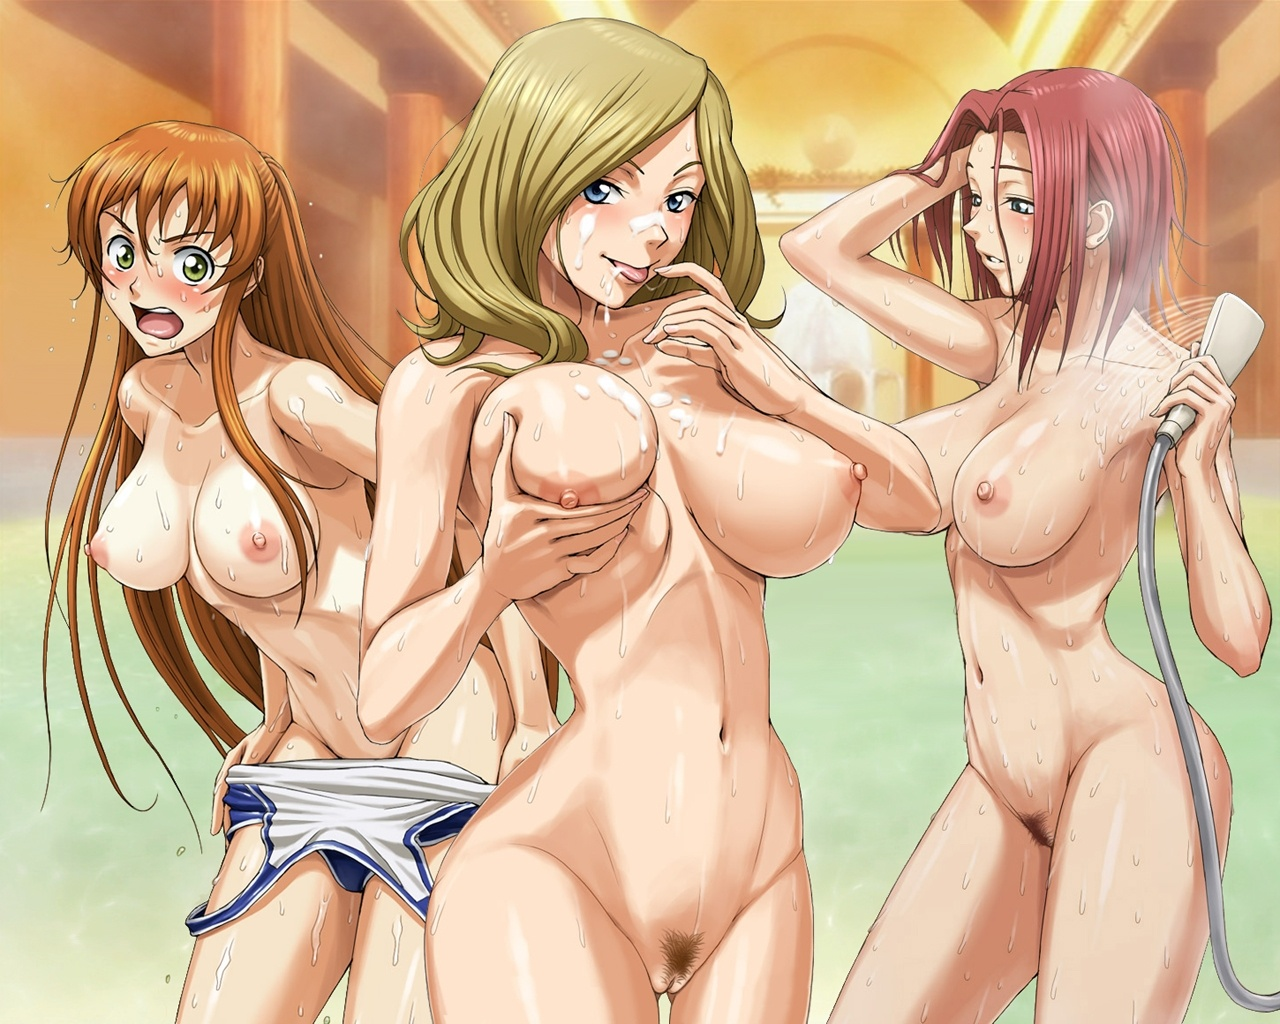 Anime with tits girls nude big